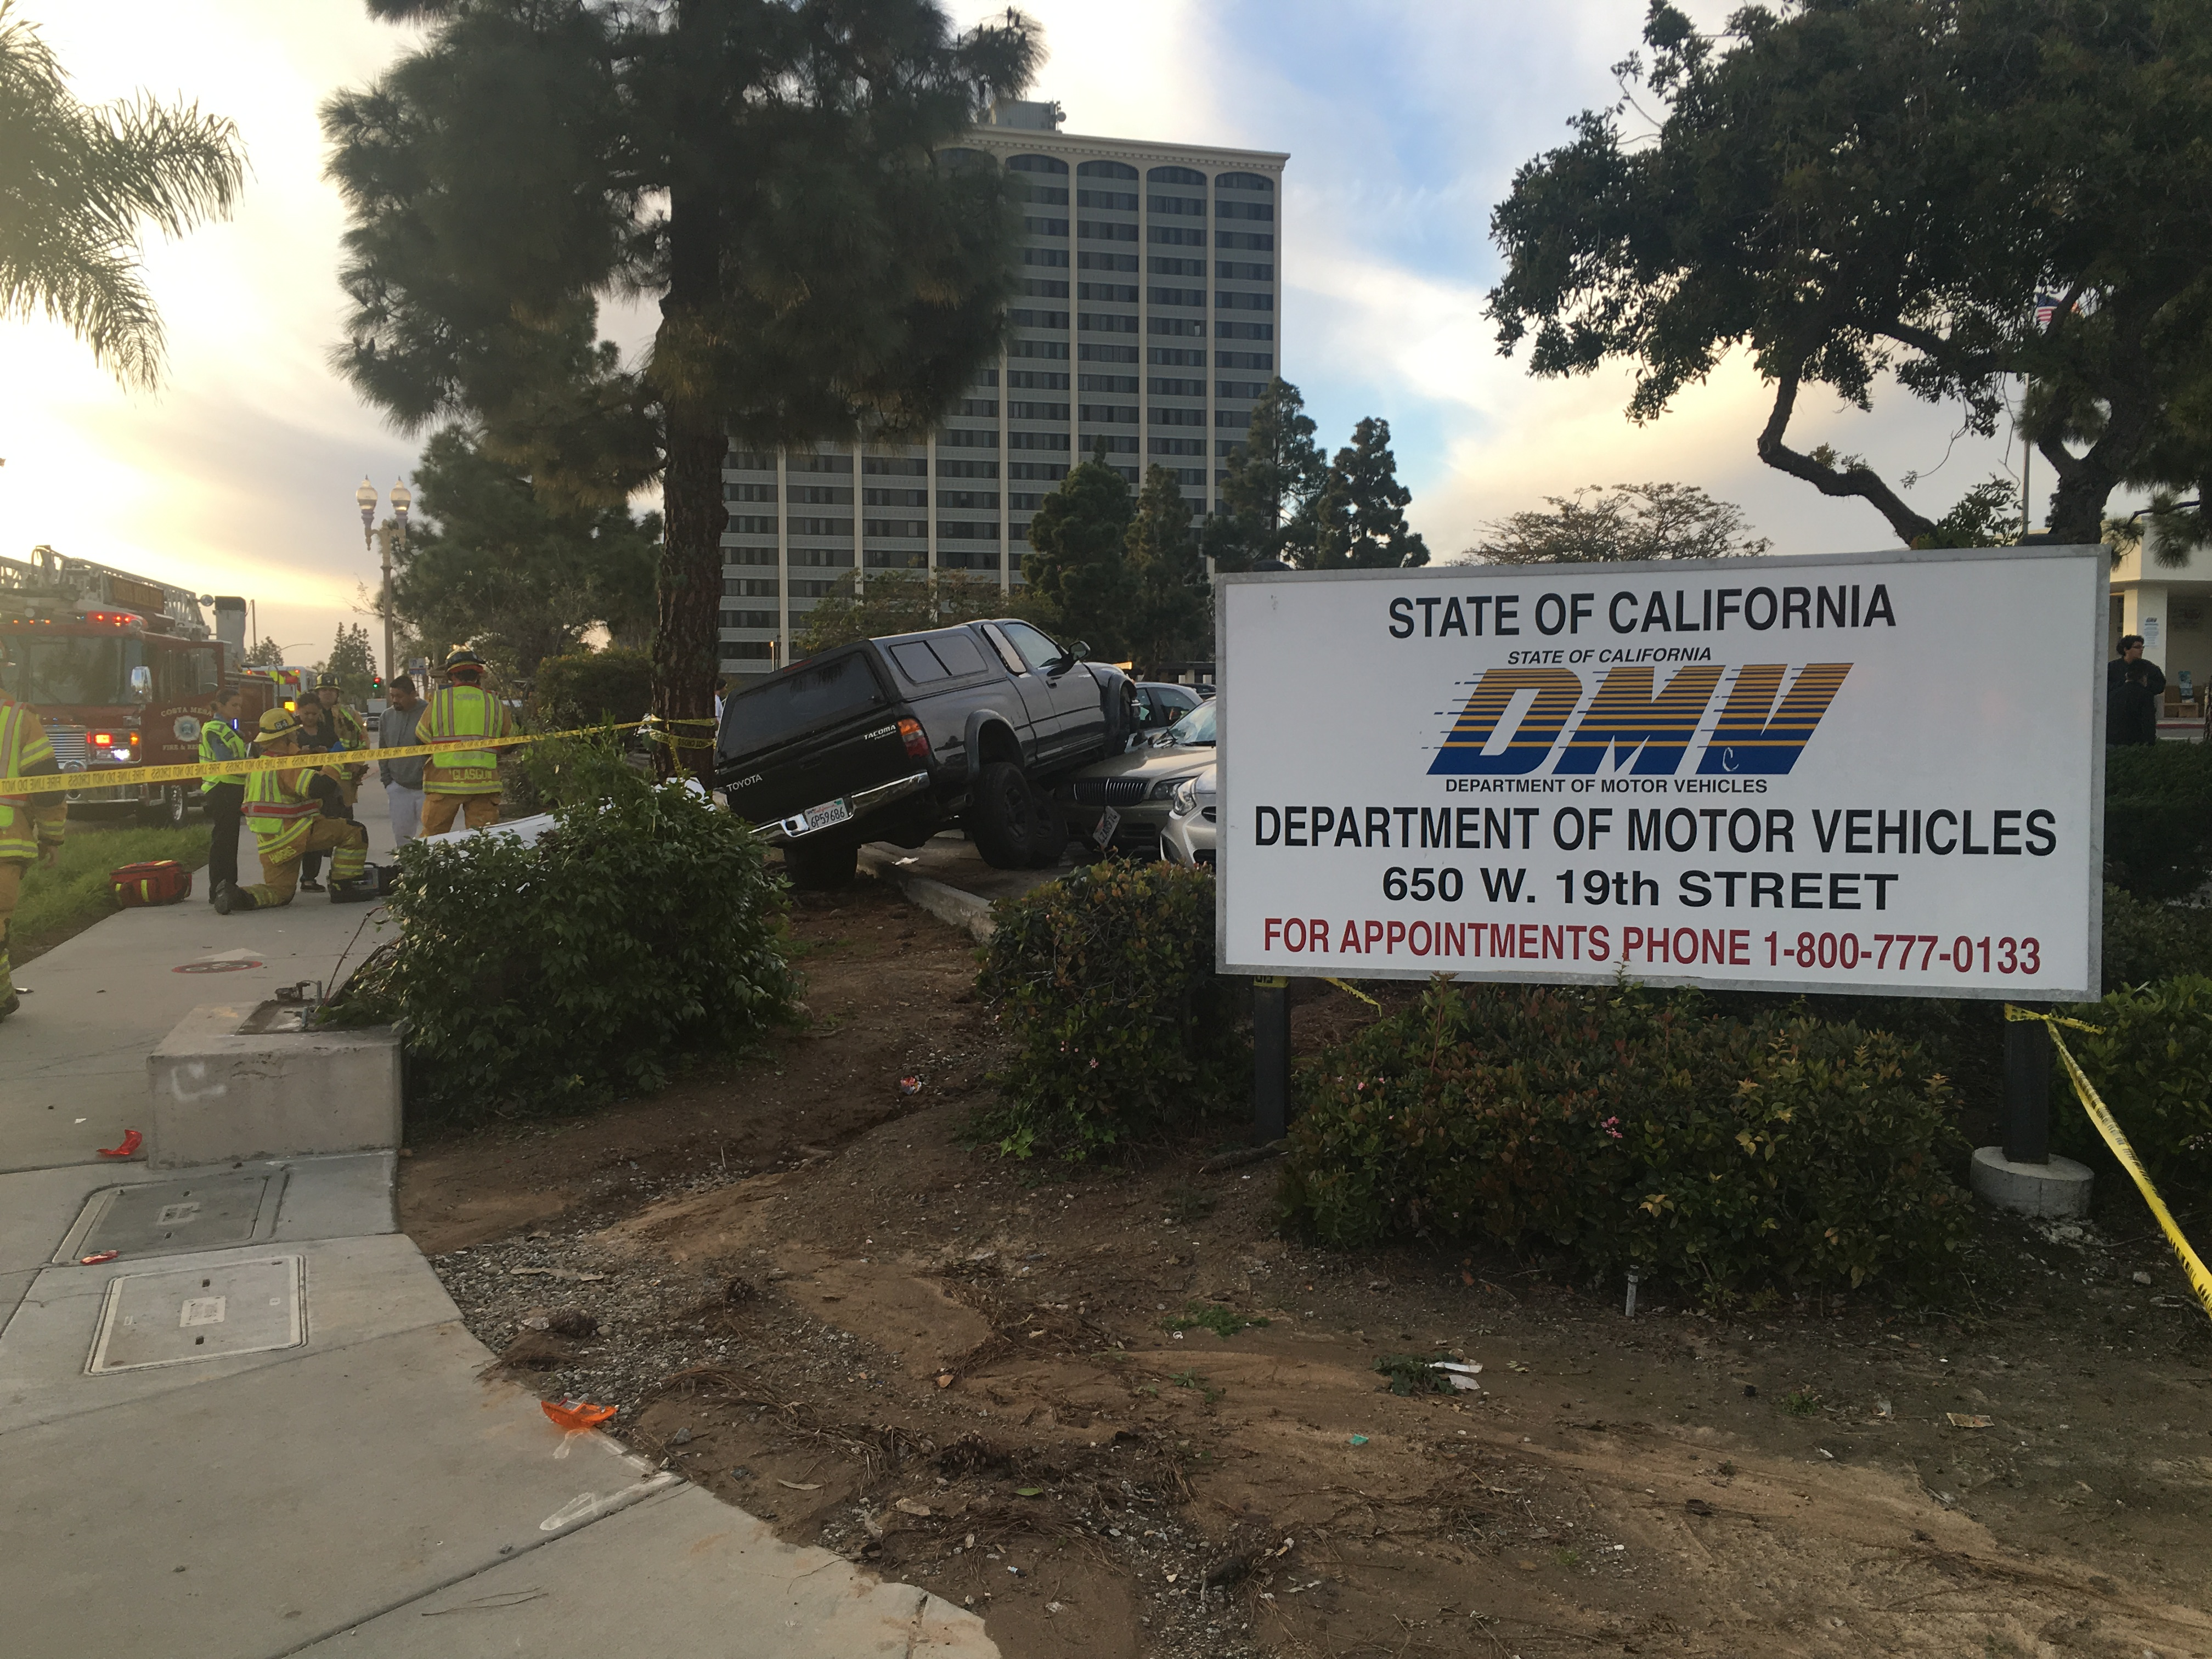 DRIVERS LICENSE TEST ENDS IN SPECTACULAR CRASH AT COSTA MESA